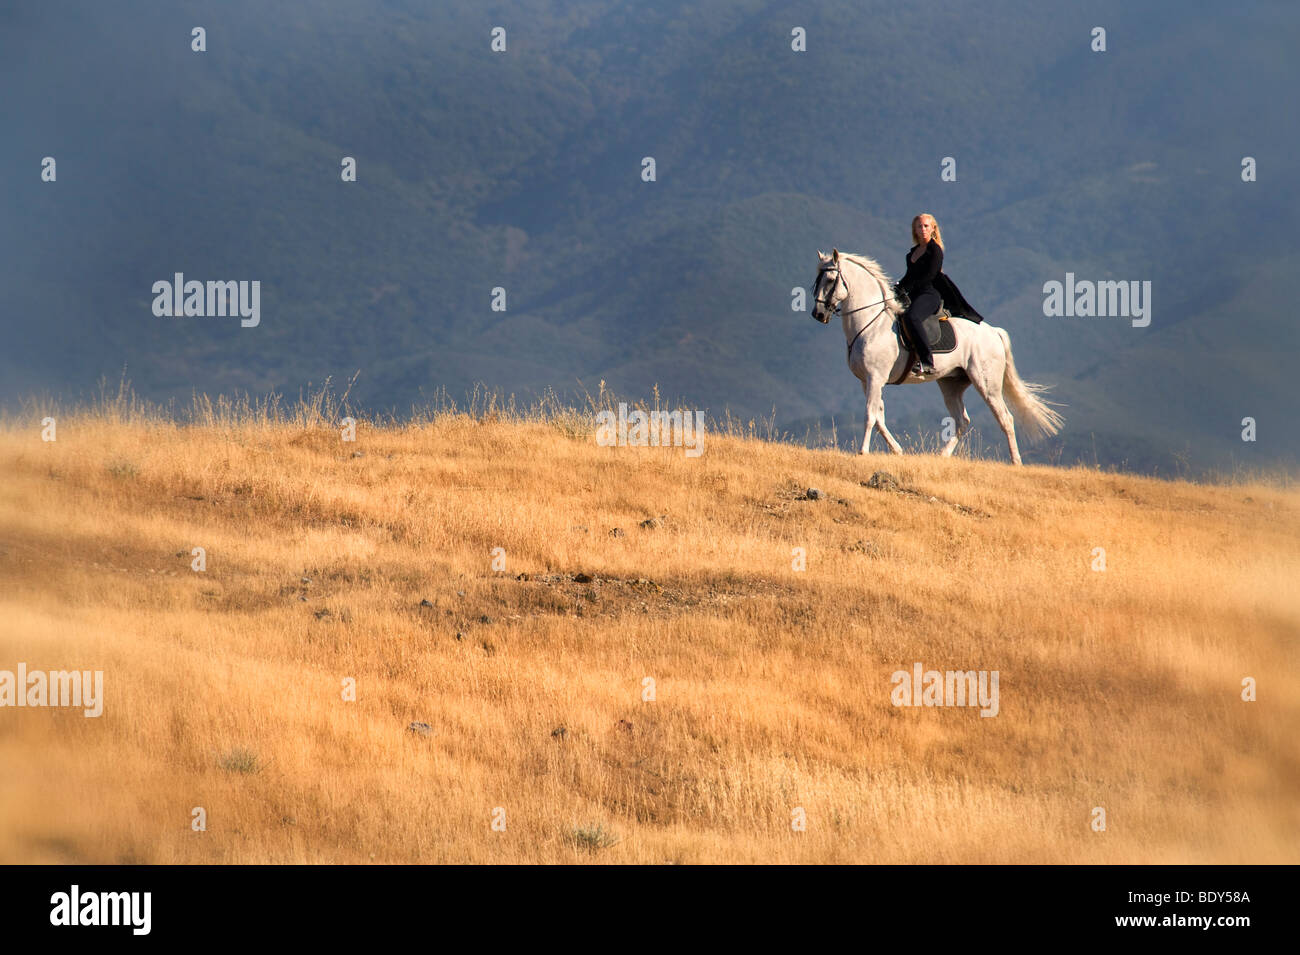 Woman Riding Andalusian Horse - Stock Image